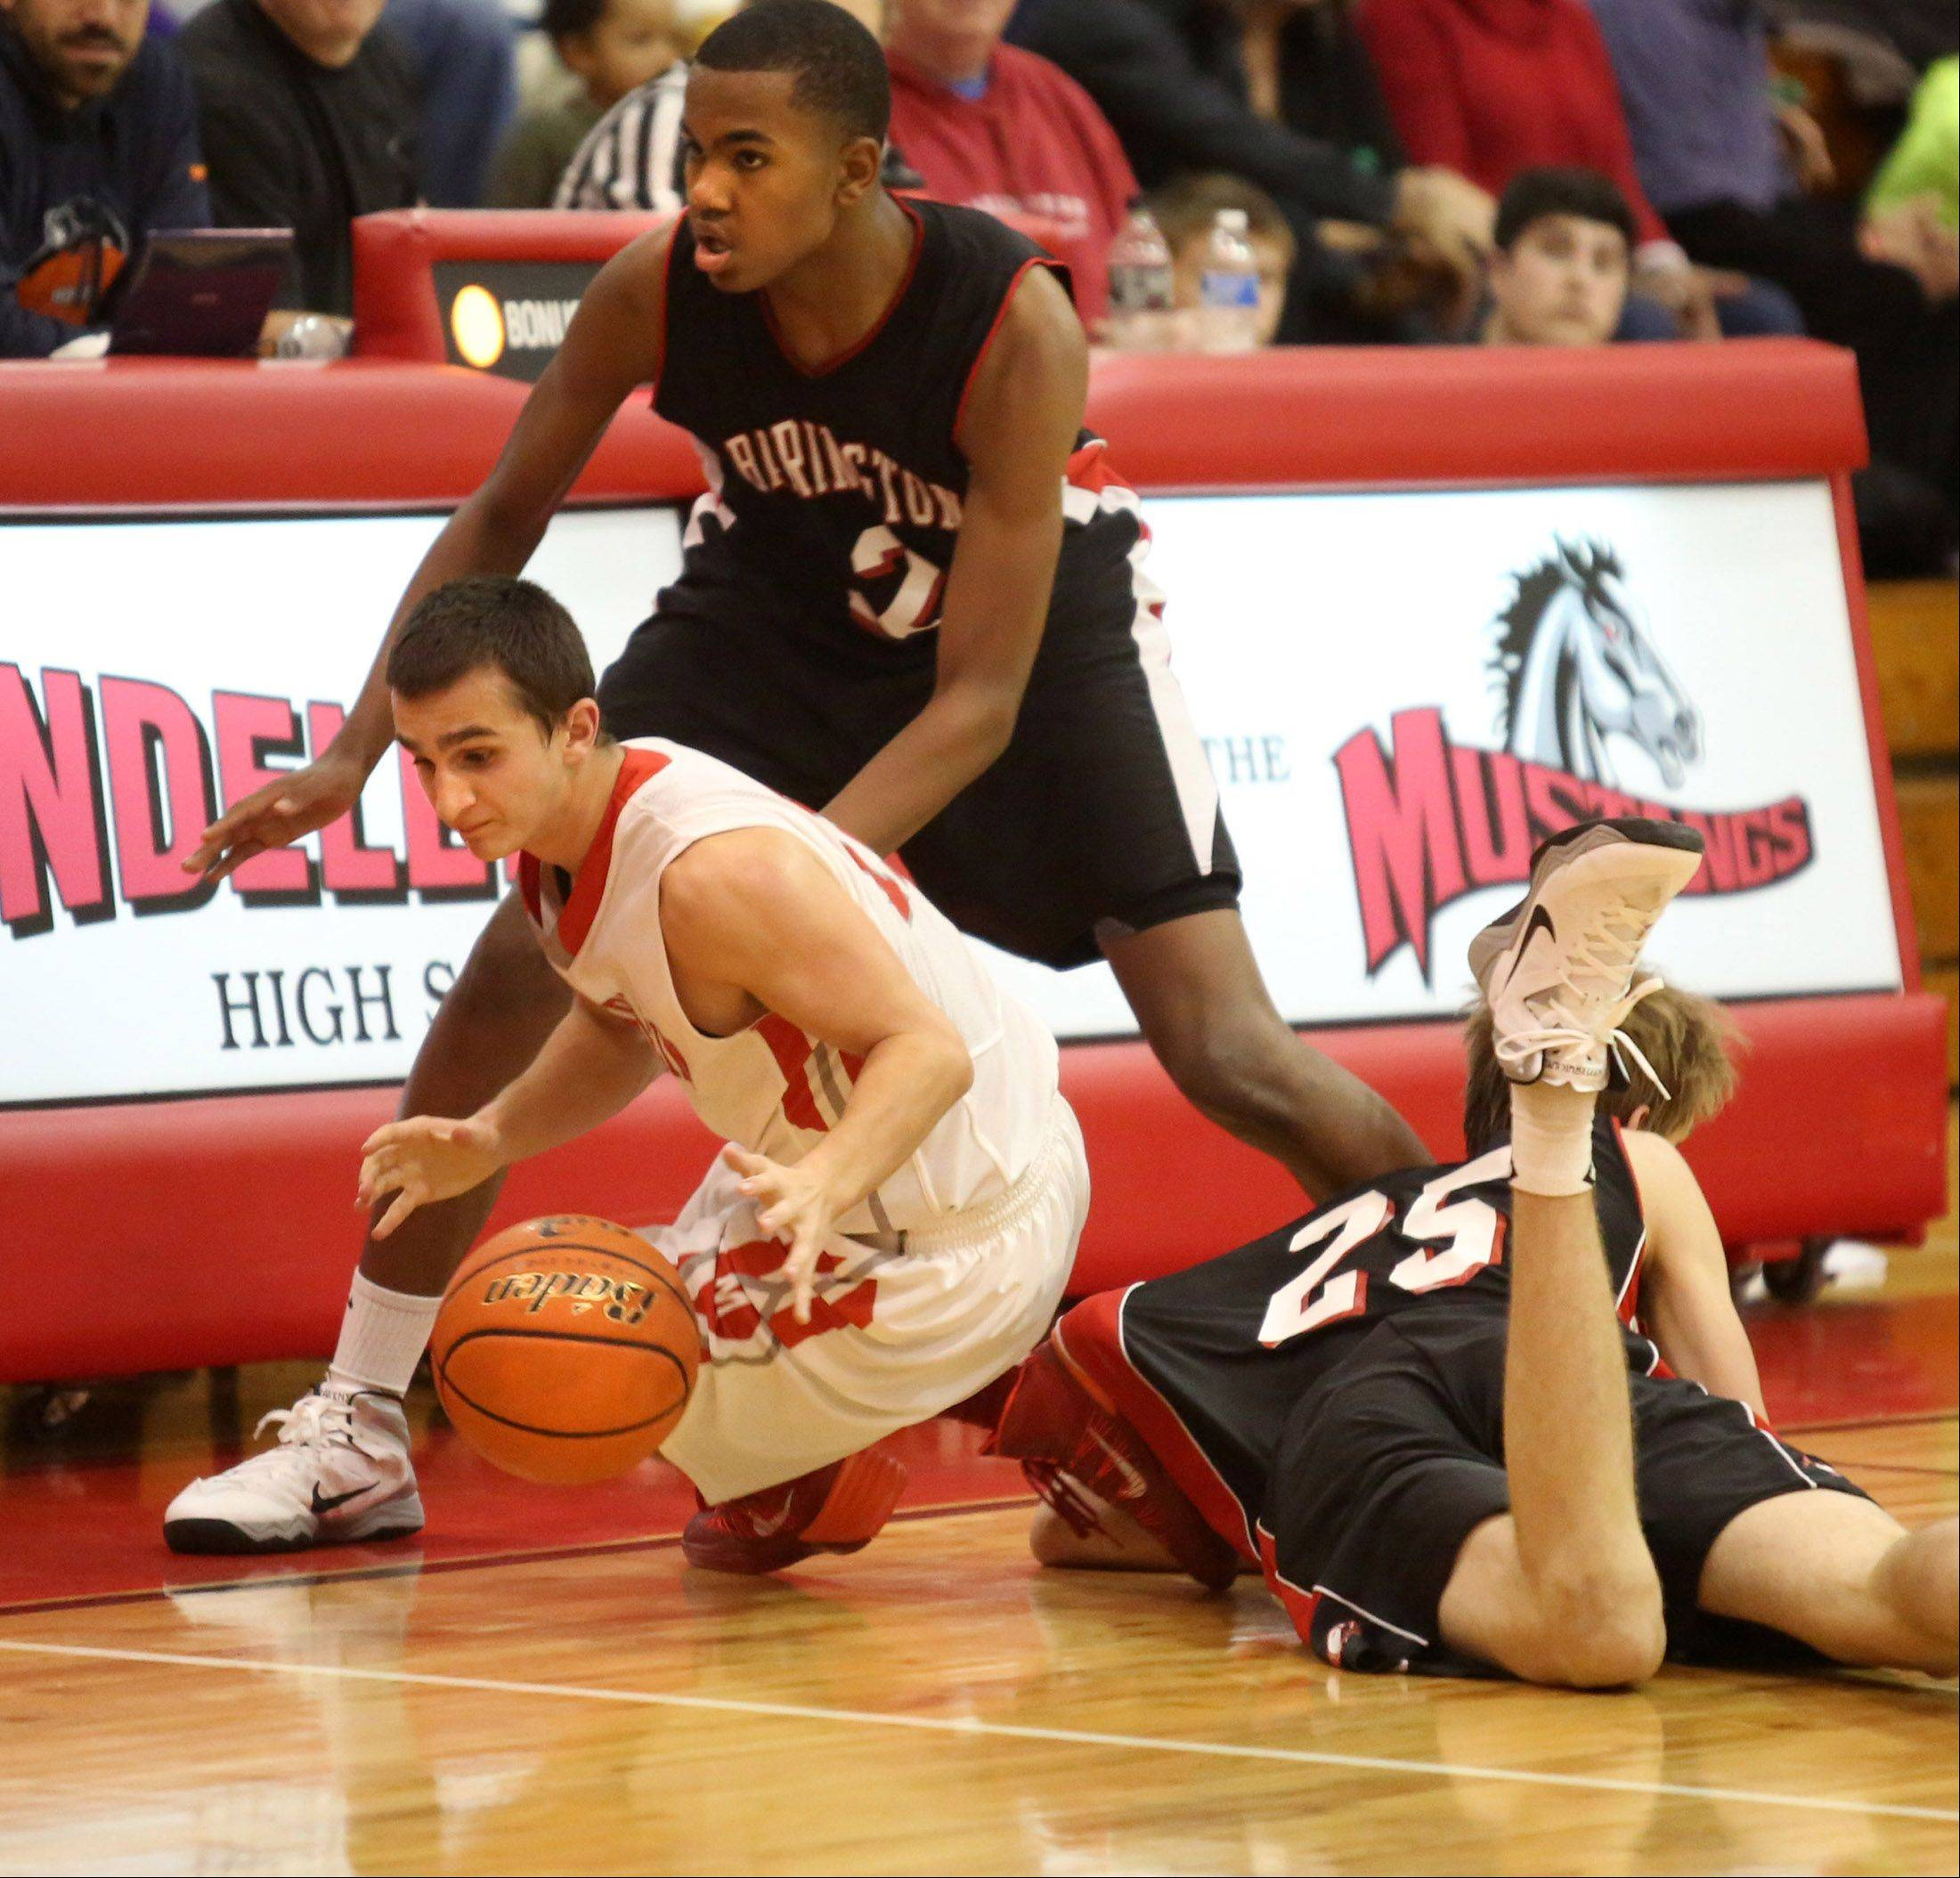 Mundelein guard Nick Filippo tries to keep his dribble after tripping over Barrington defender Rapolas Ivanauskas, flat on the floor, with Barrington's Chris Lester trying to regain position on Friday at Mundelein.